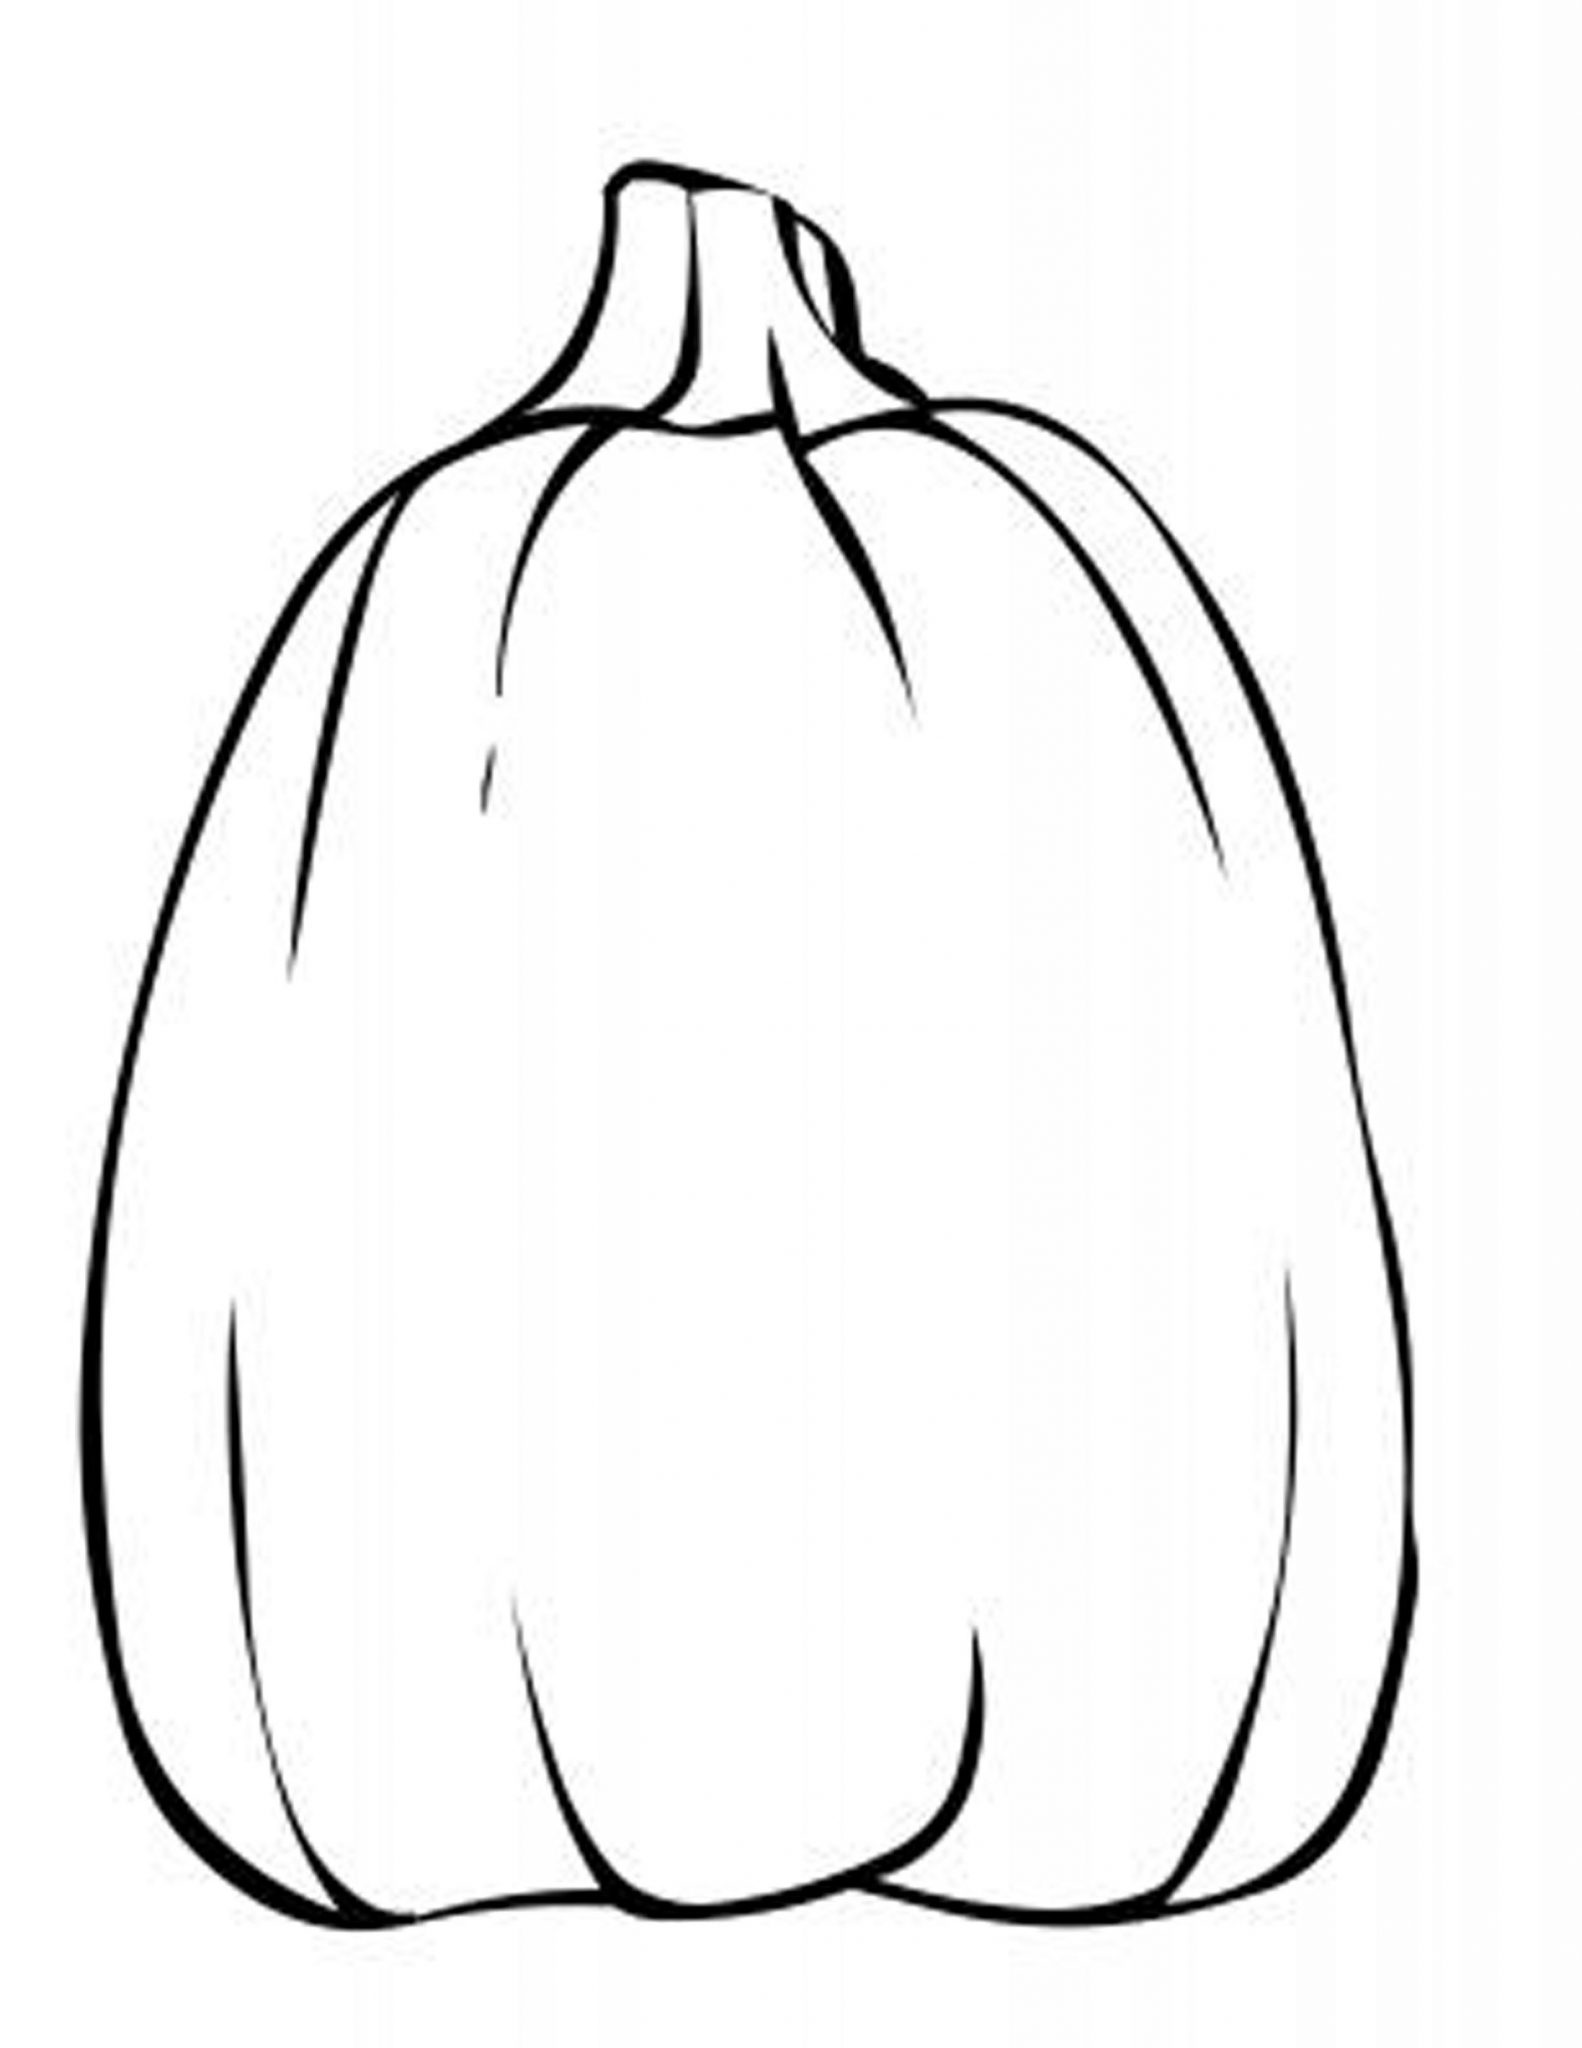 pumpking coloring pages print download pumpkin coloring pages and benefits of pumpking coloring pages 1 1